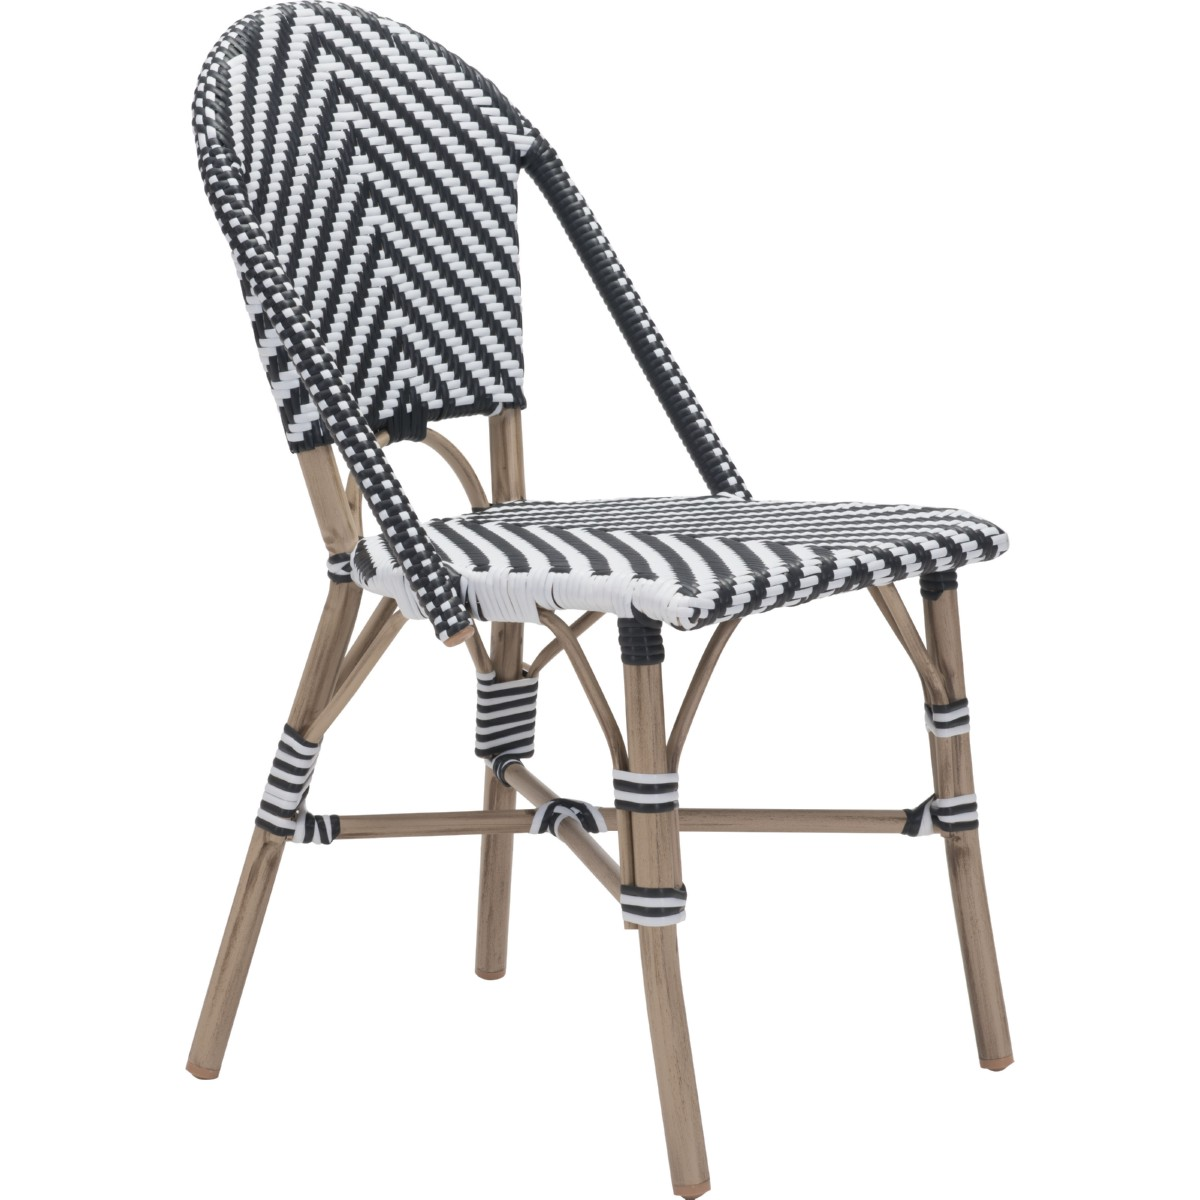 Zuo Modern Furniture 703805 Paris Outdoor Dining Chair In Black U0026 White  Poly Weave On Synthetic Bamboo Frame (Set Of 2)